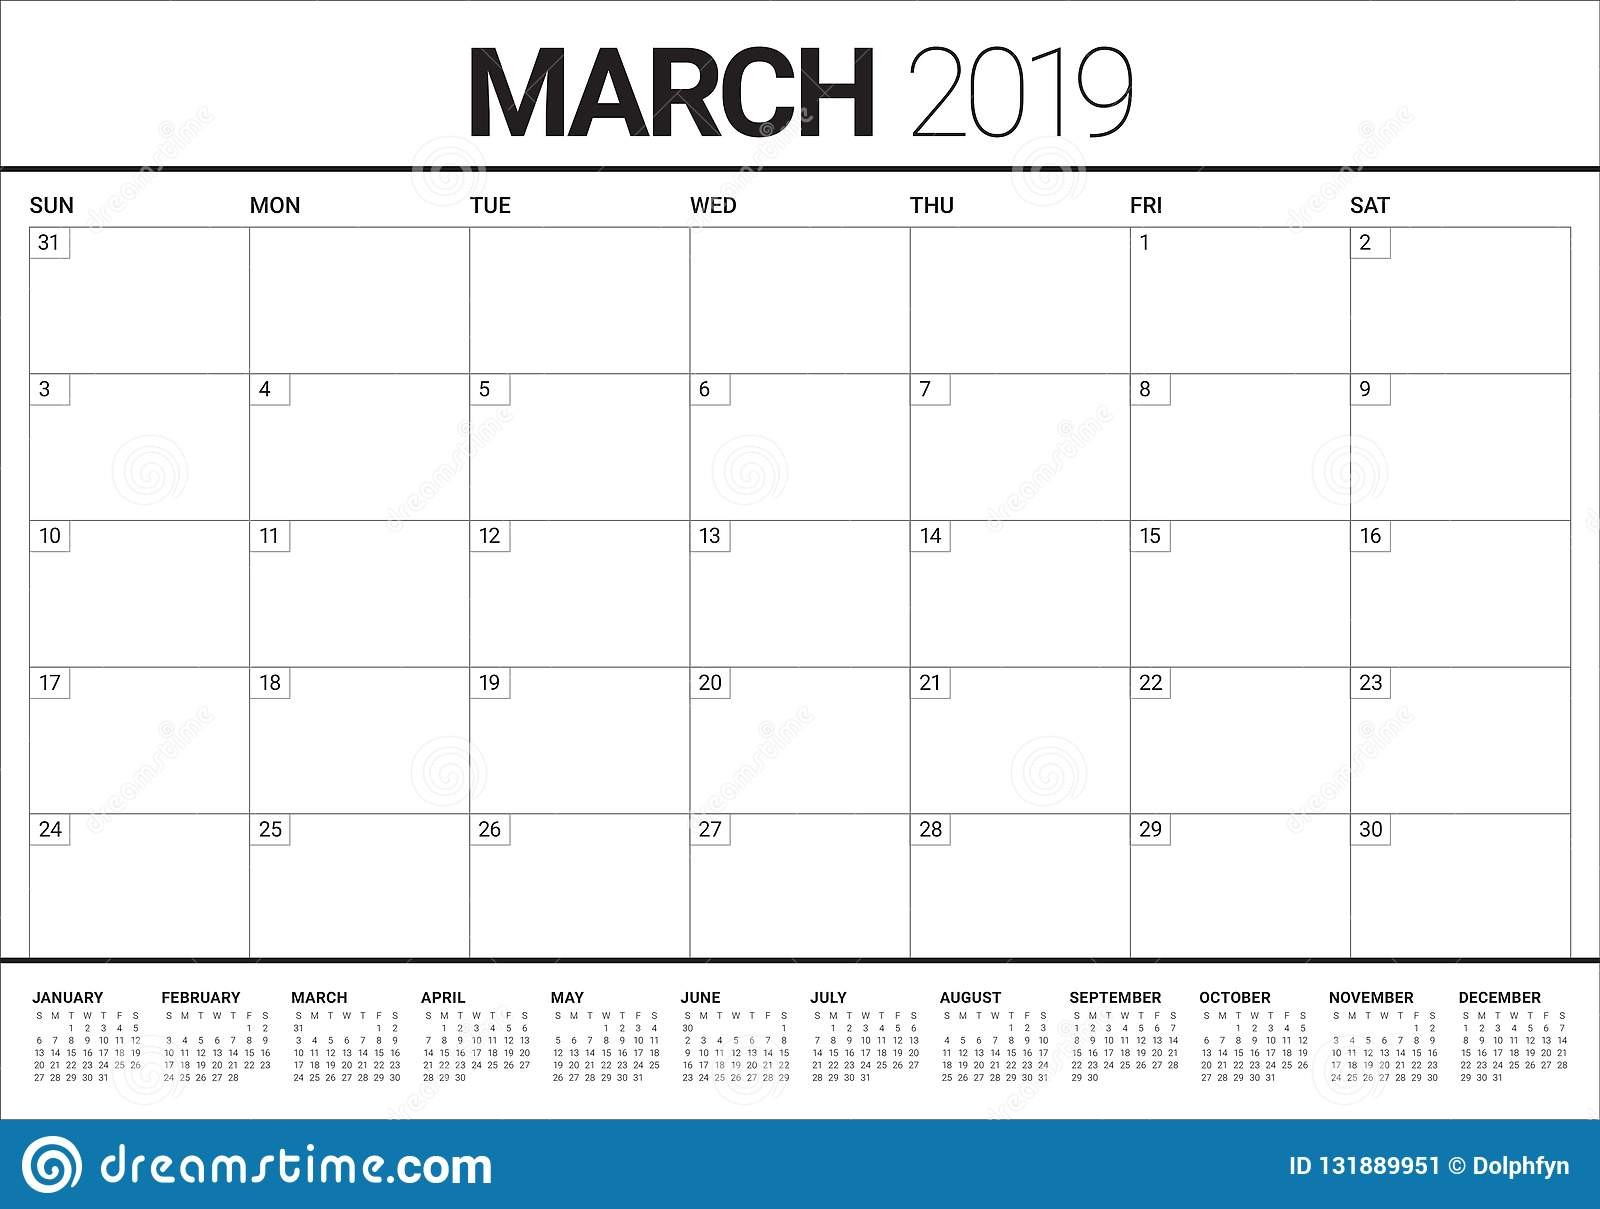 March Calendar 2019 Más Recientemente Liberado March 2019 Desk Calendar Vector Illustration Stock Vector Of March Calendar 2019 Más Populares March 2019 Calendar Pdf Word Excel